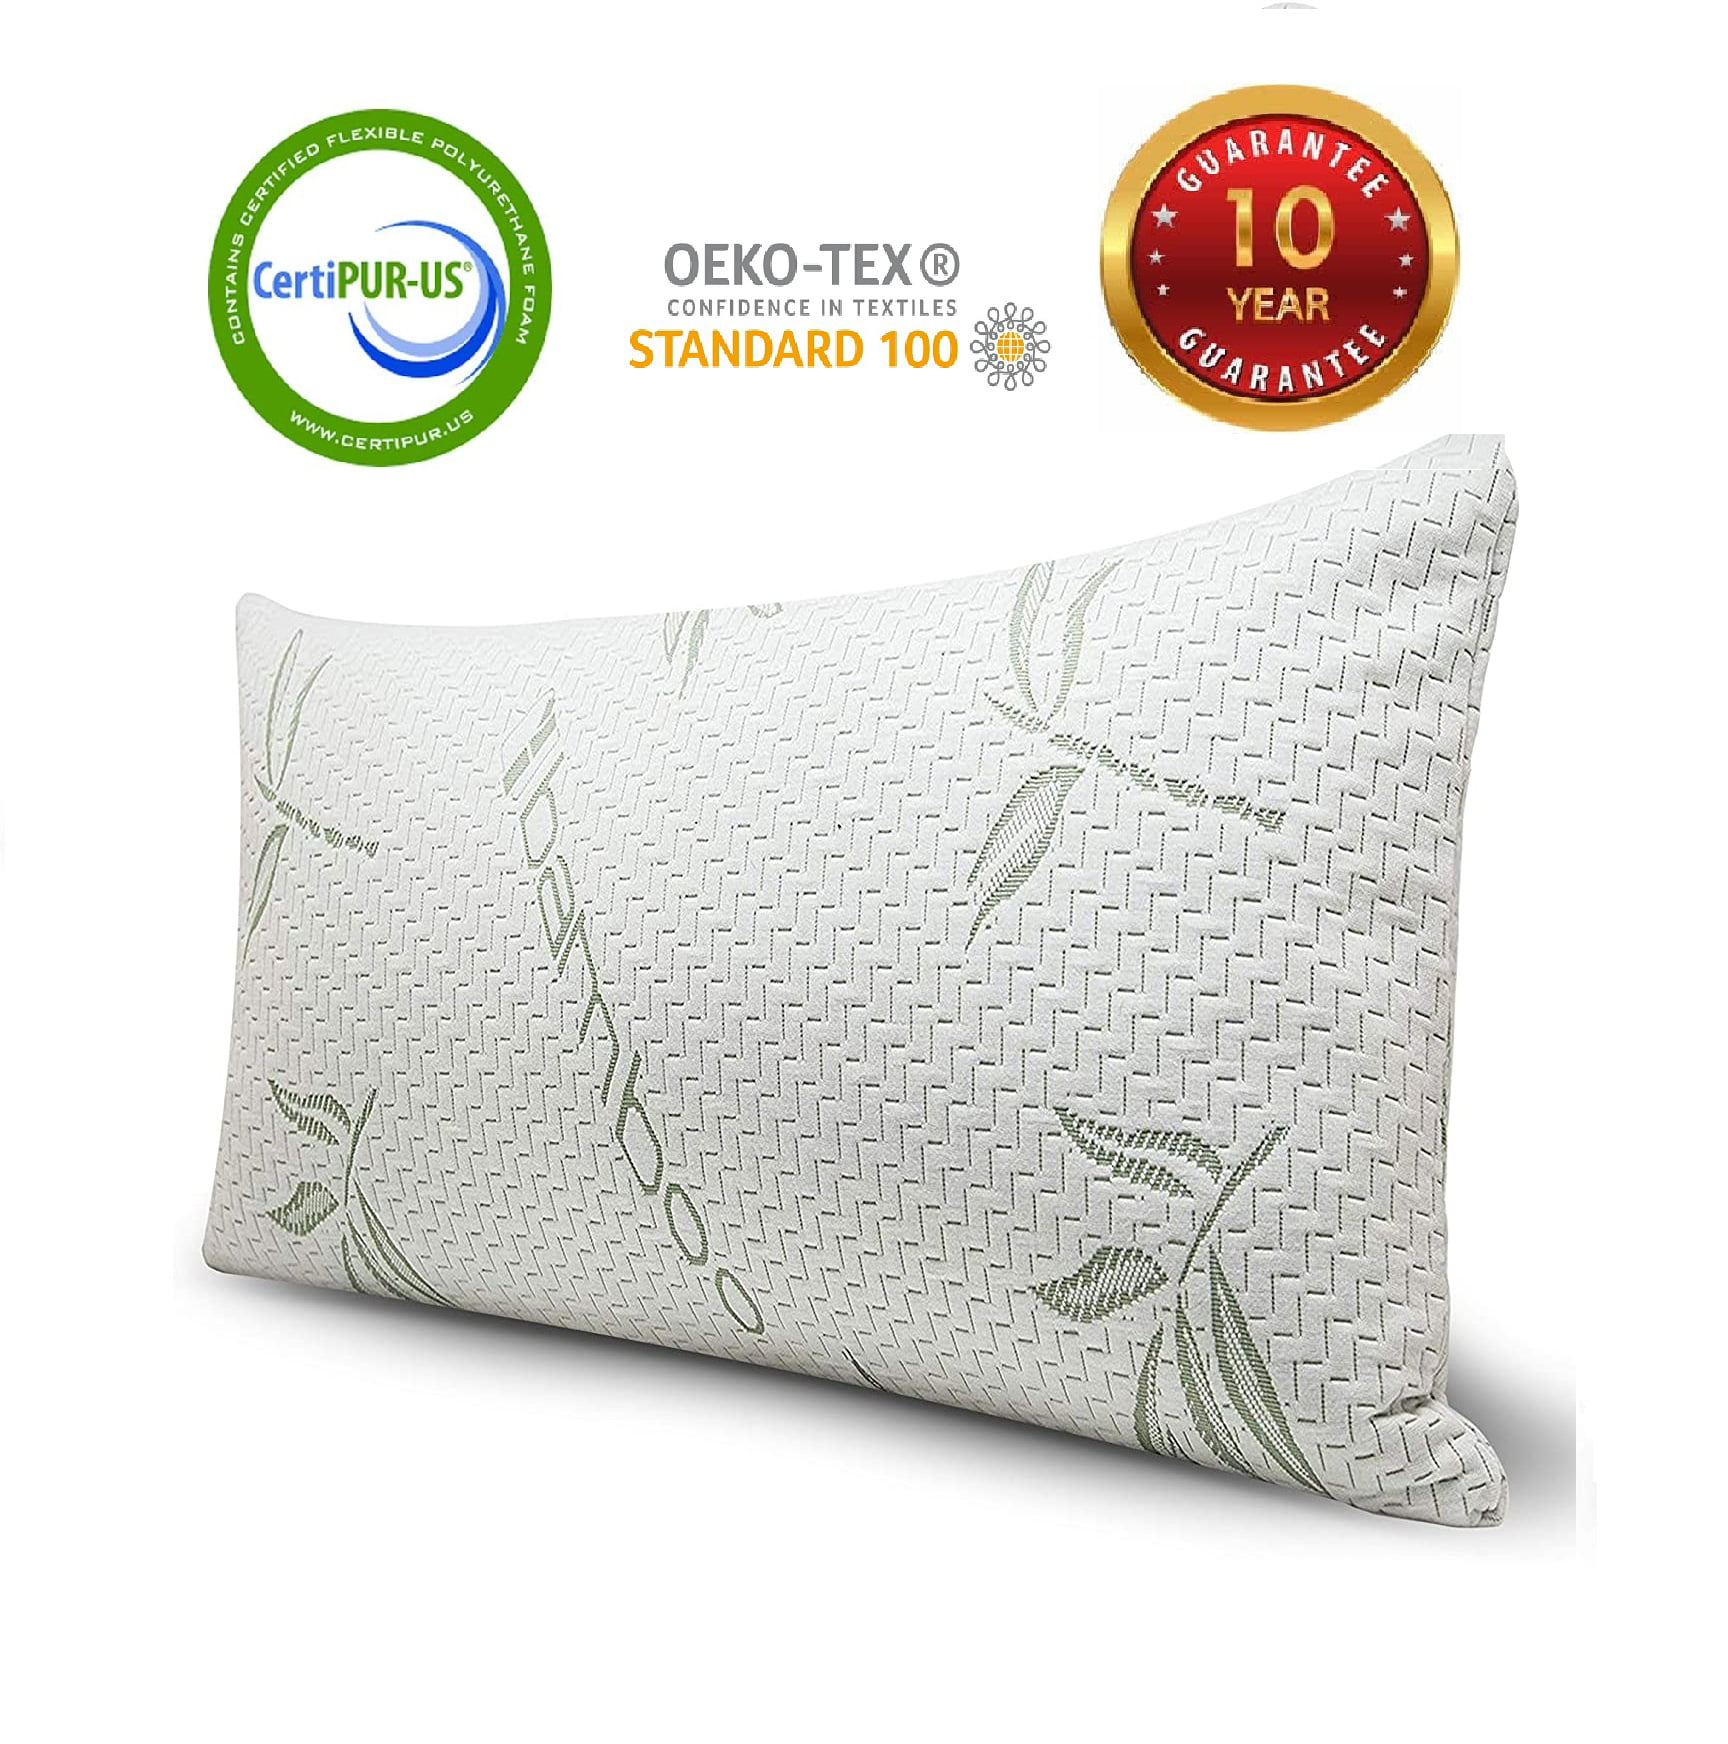 Bamboo Shredded Memory Foam Pillow Hypoallergenic Cover Pillow Queen//King Size